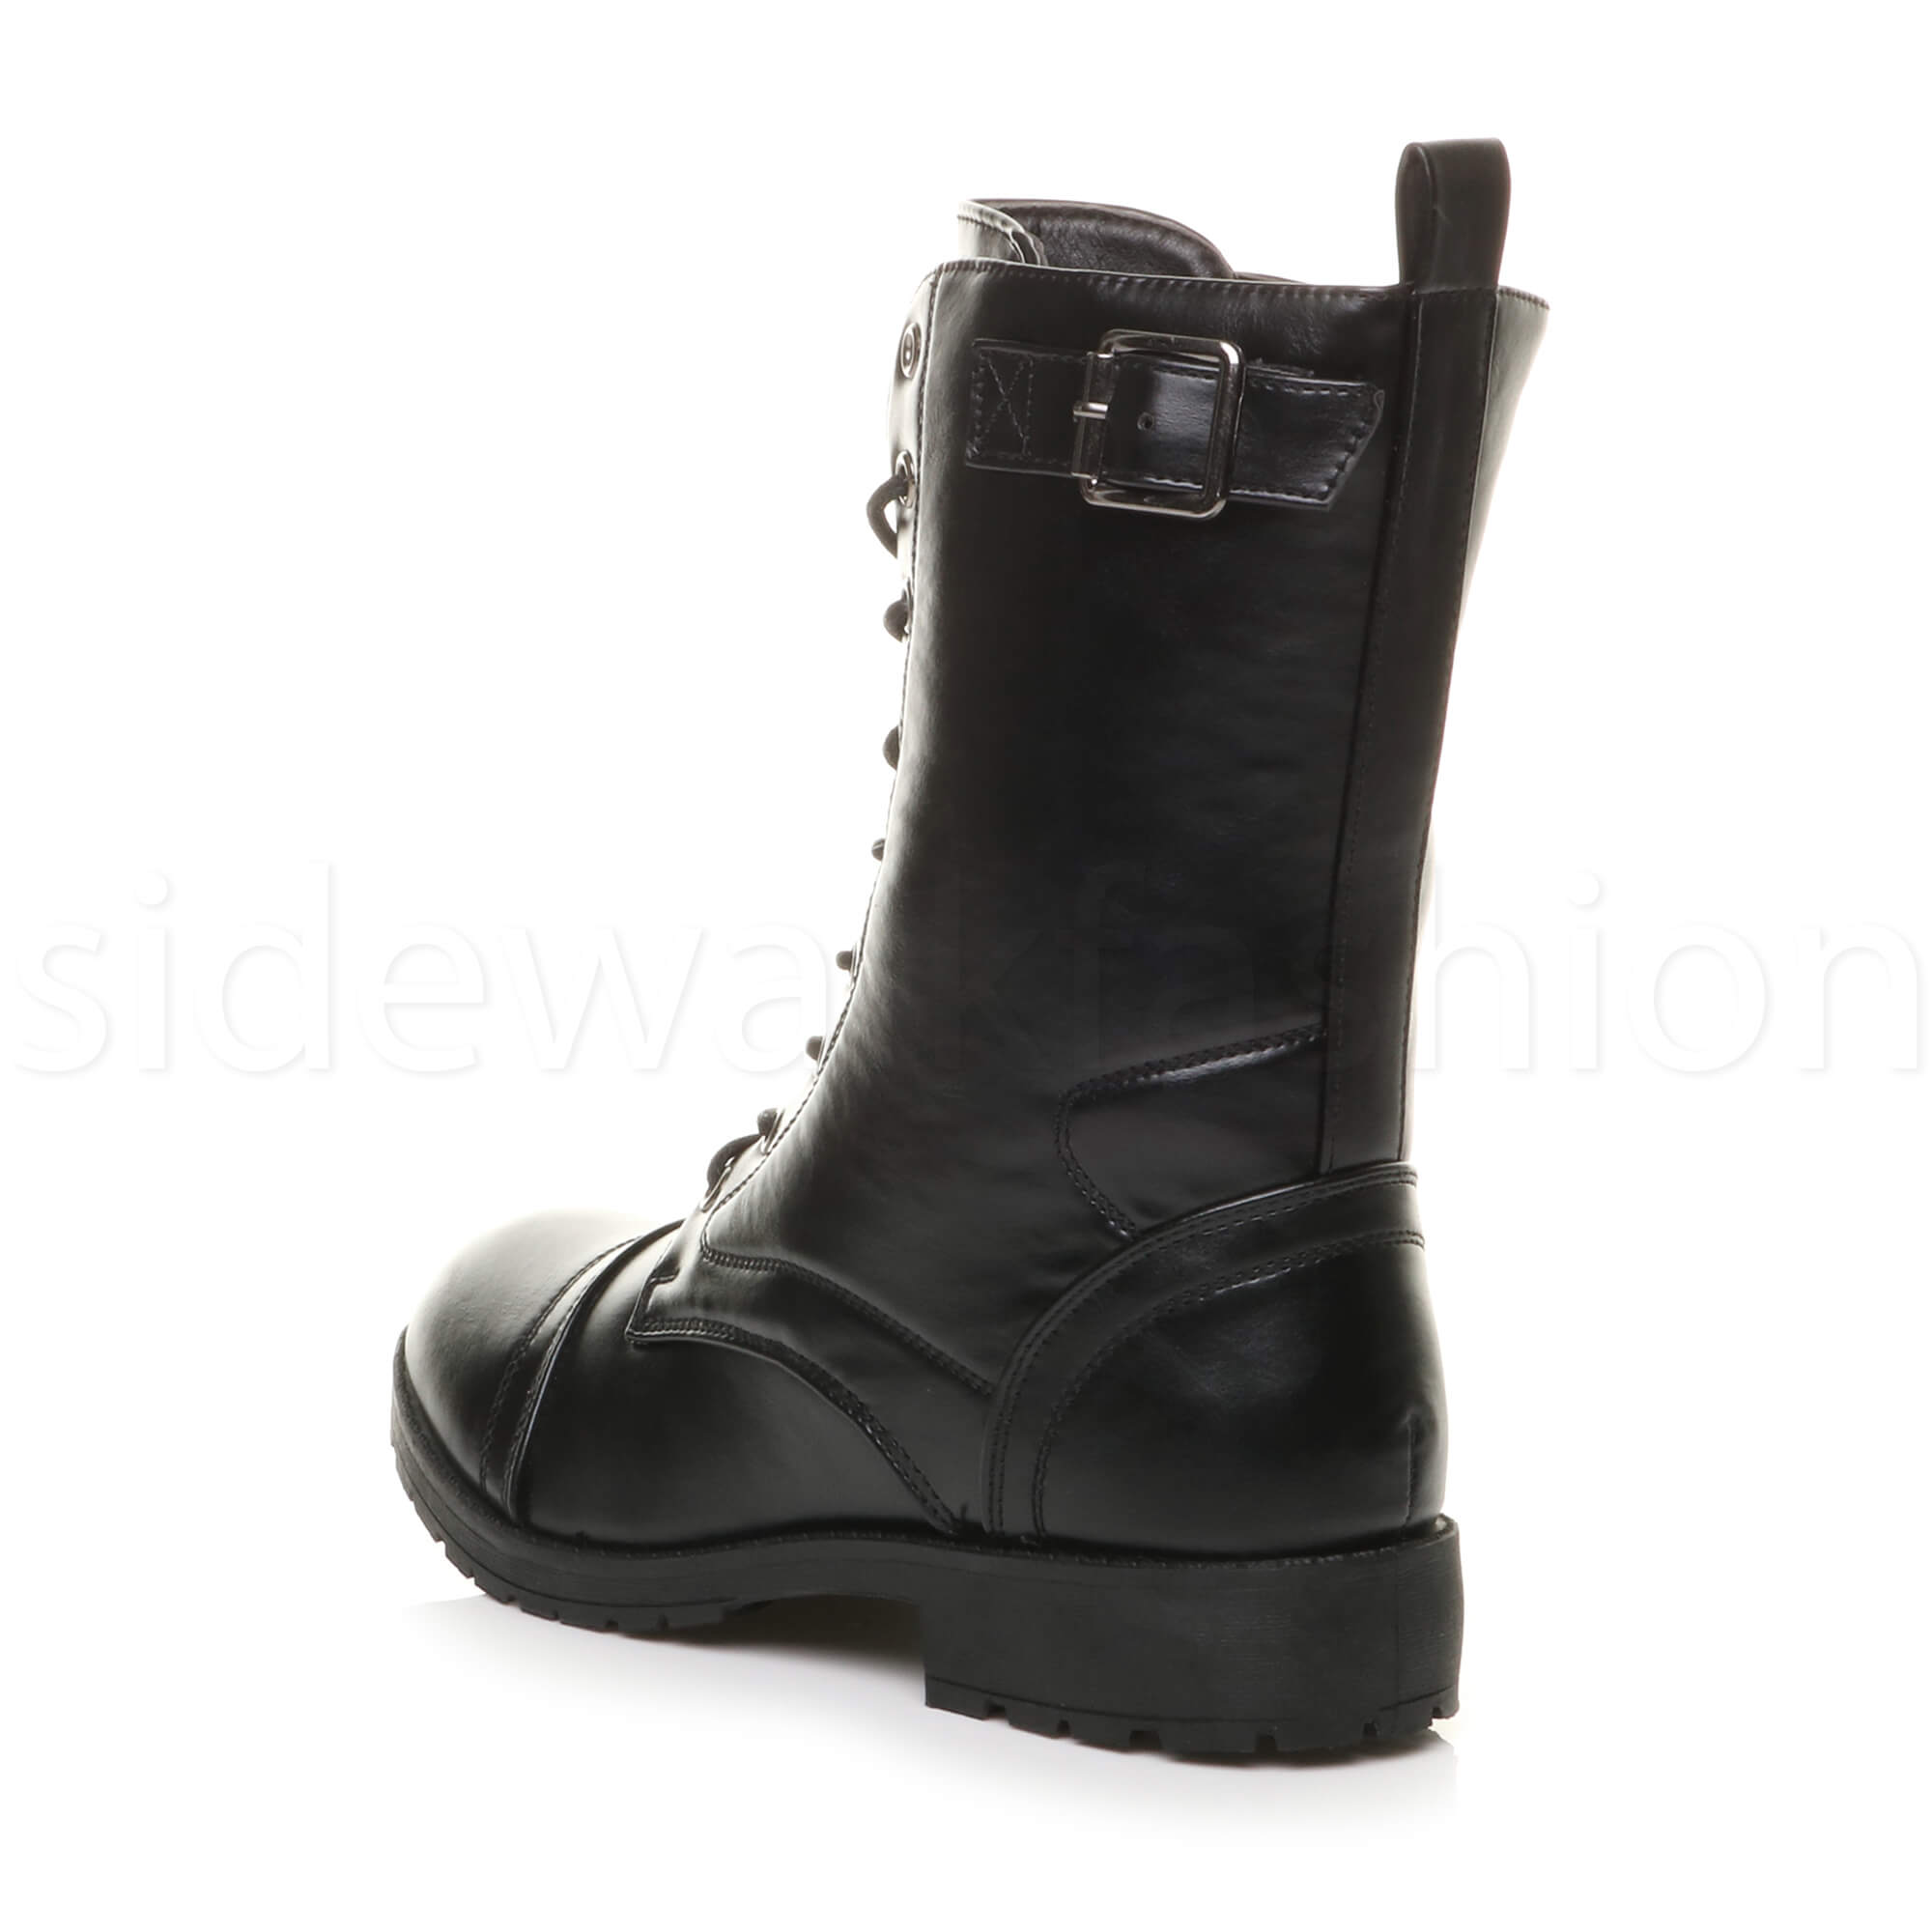 Womens-ladies-low-heel-flat-lace-up-zip-combat-biker-military-ankle-boots-size thumbnail 13